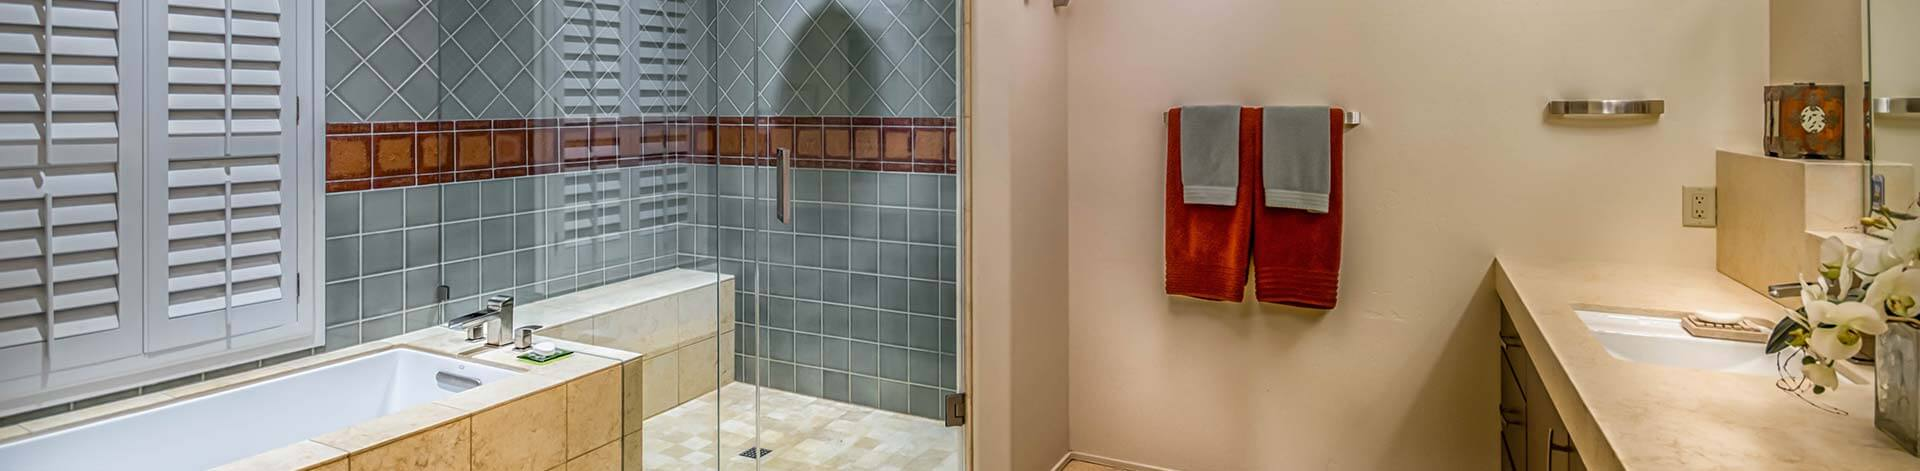 Remodeling Phoenix Bathroom Remodeling In Phoenix & Scottsdale  Republic West Remodeling